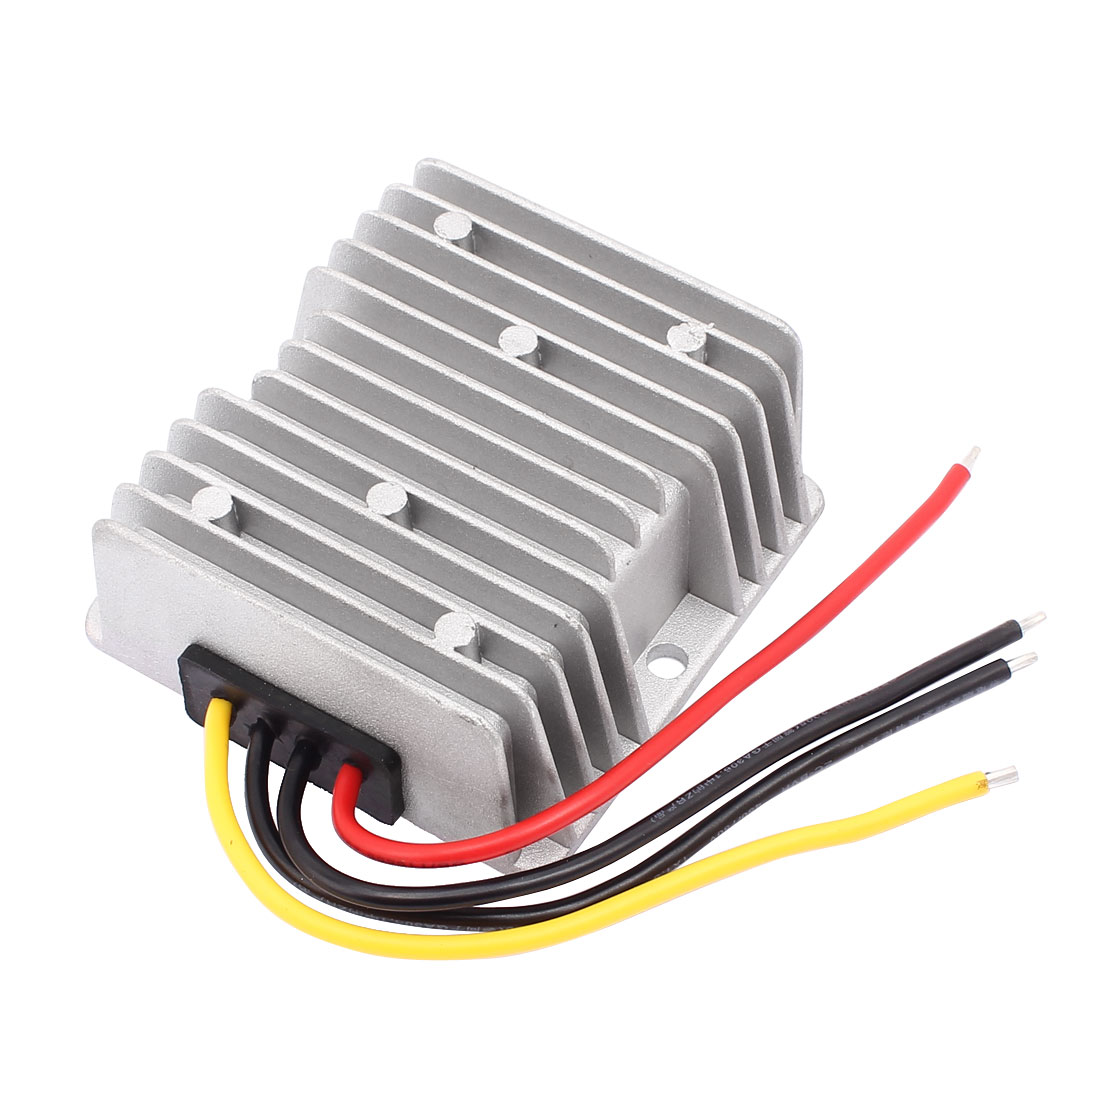 DC24V(20V-36V) to DC24V 6A 144W Booster Waterproof Car Power Converter Regulator Transformer